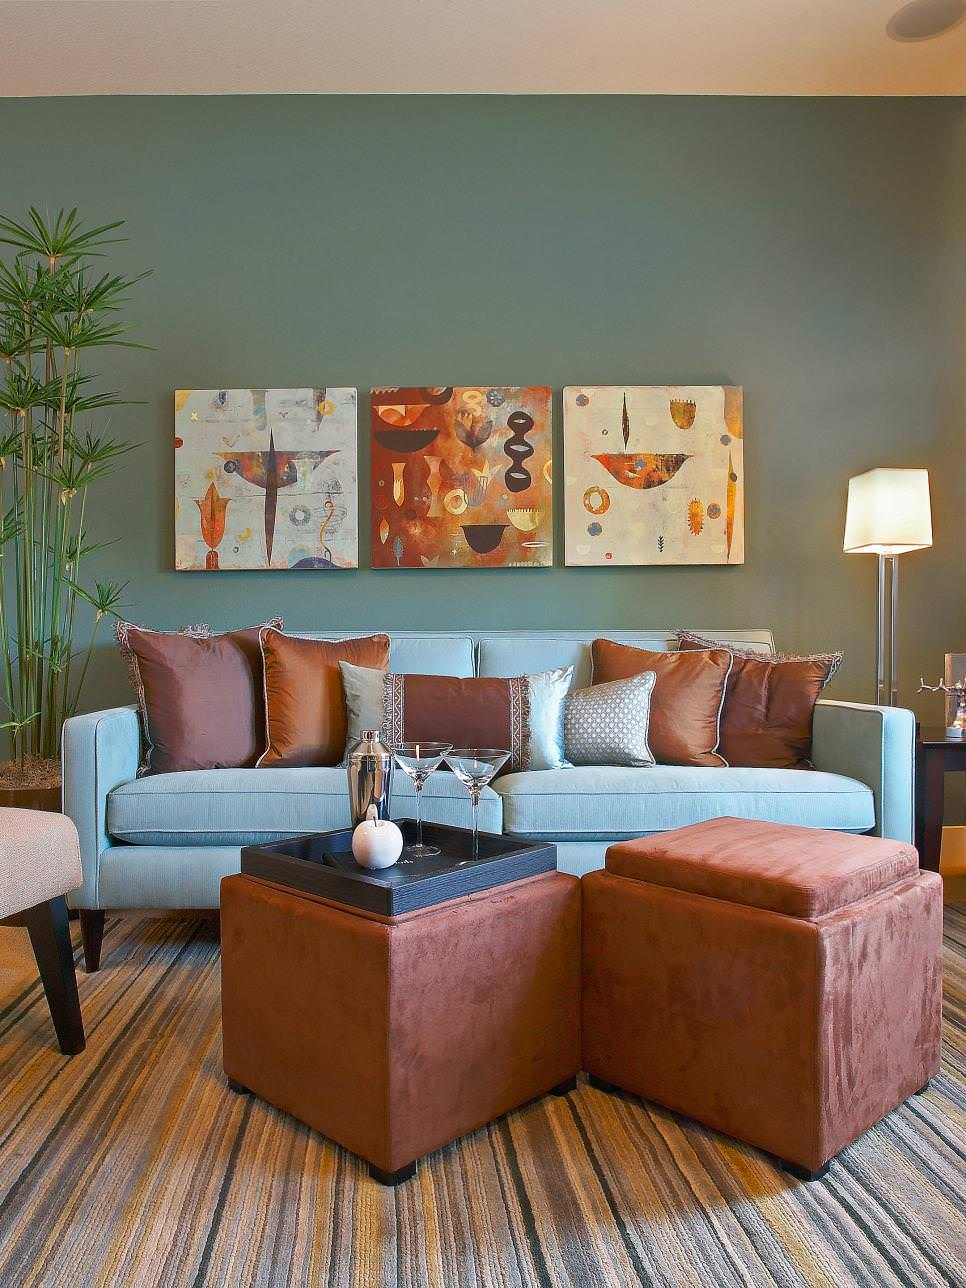 20 Blue and Brown Living Room Designs Decorating Ideas  Design Trends  Premium PSD Vector